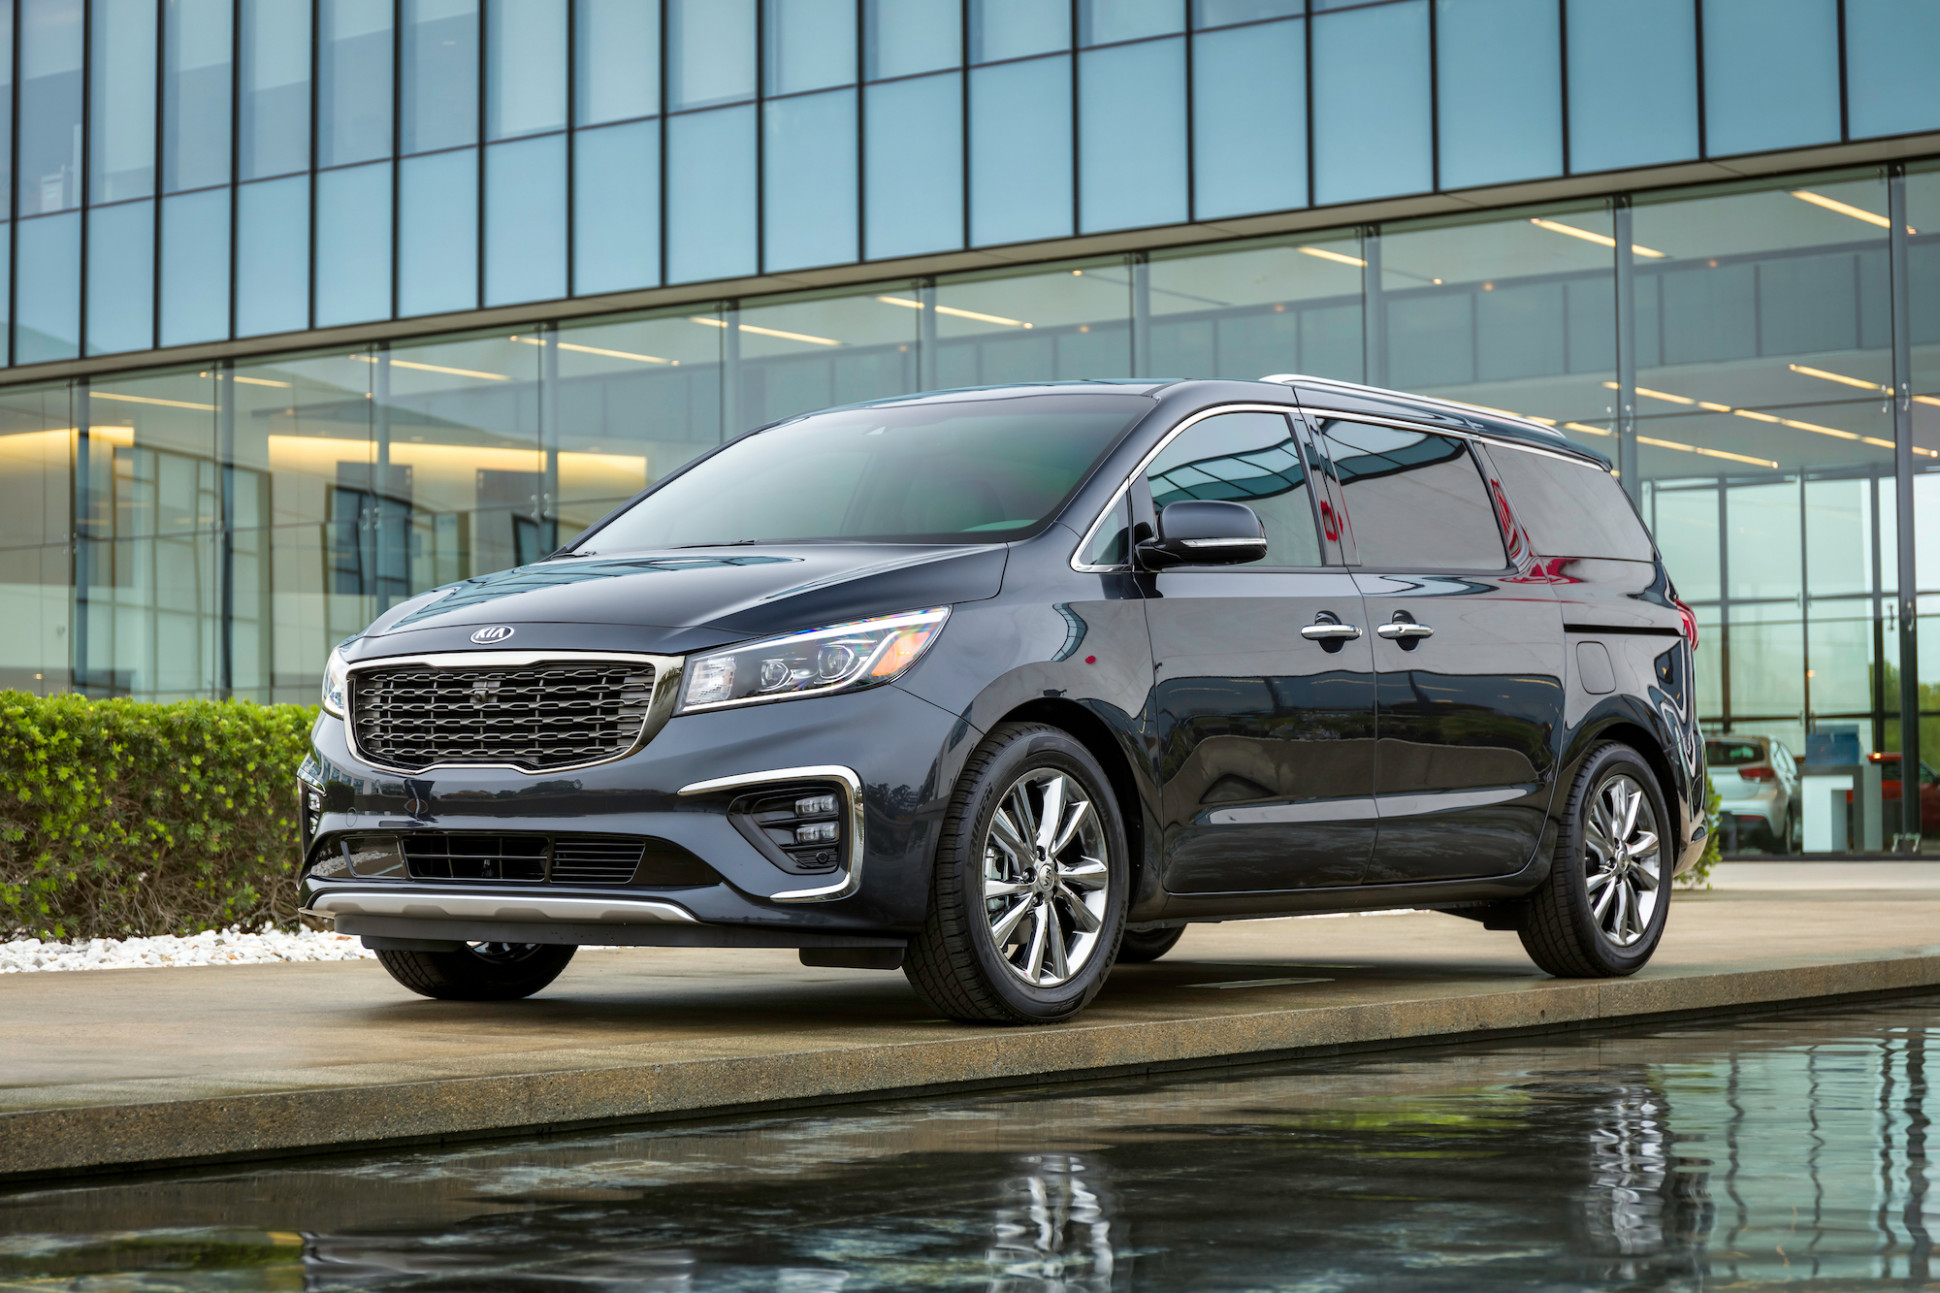 6 Kia Sedona Review, Ratings, Specs, Prices, and Photos - The ..